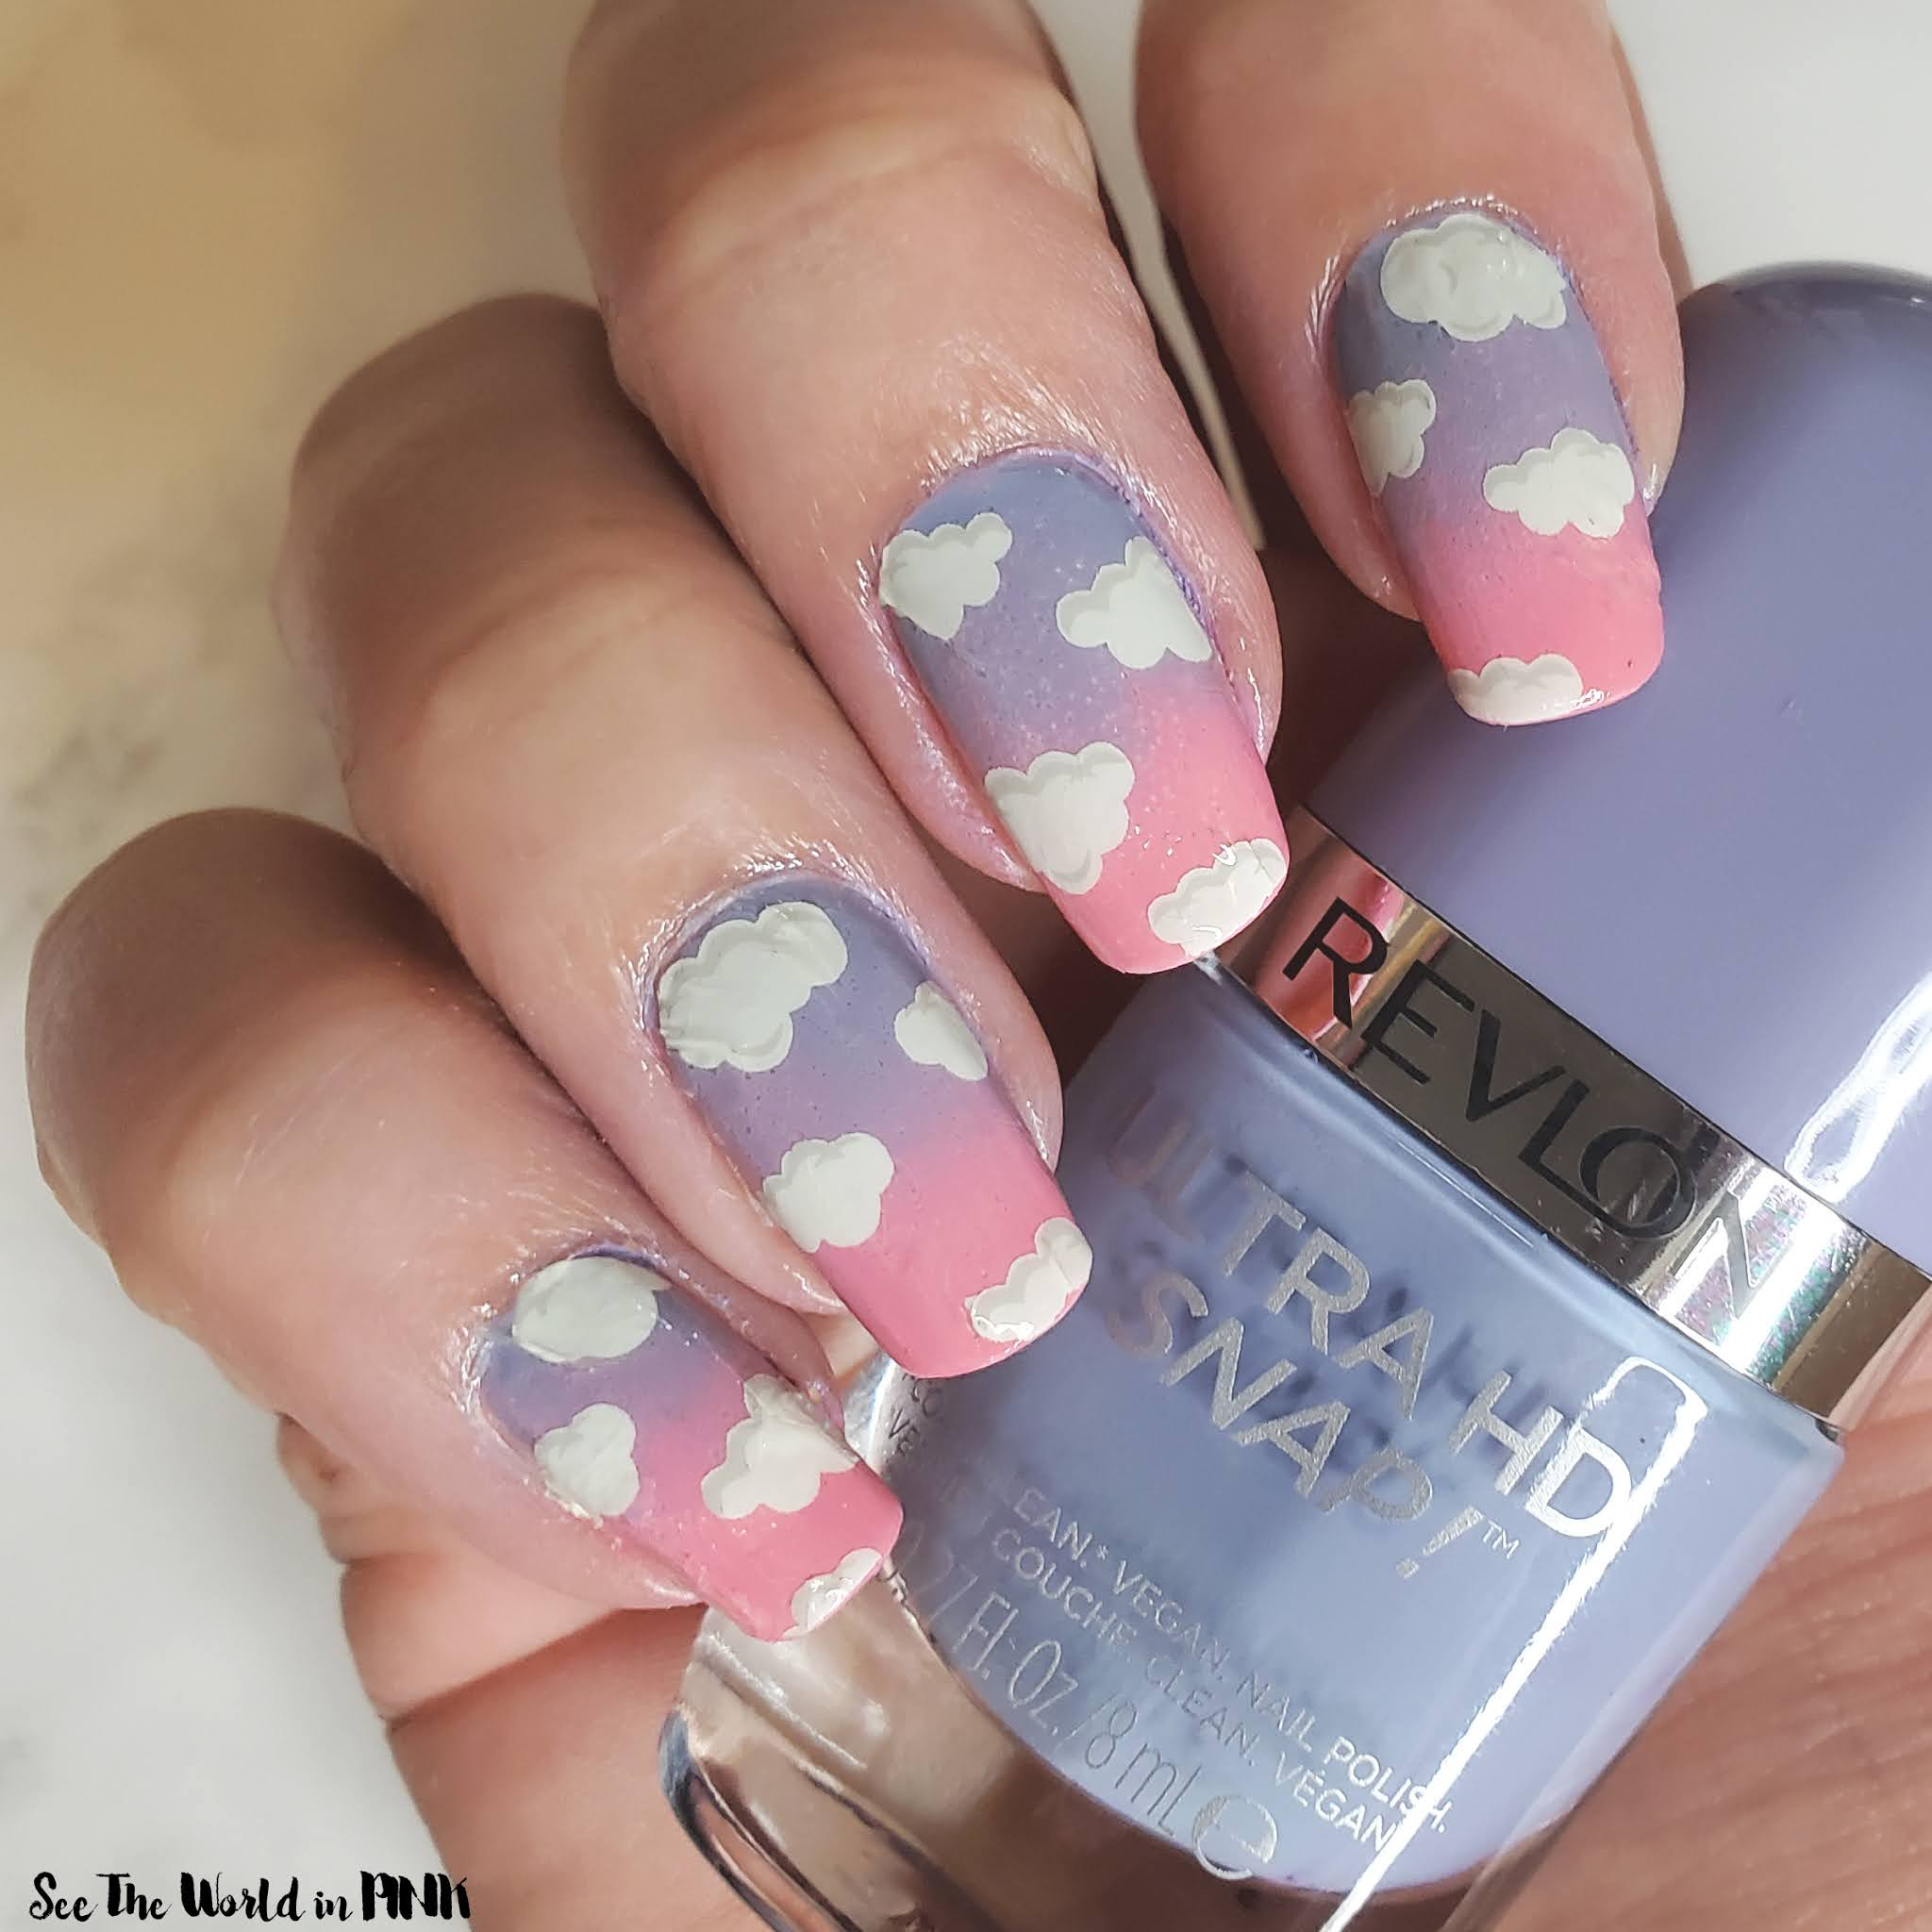 Manicure Monday - Summer Skies Nails